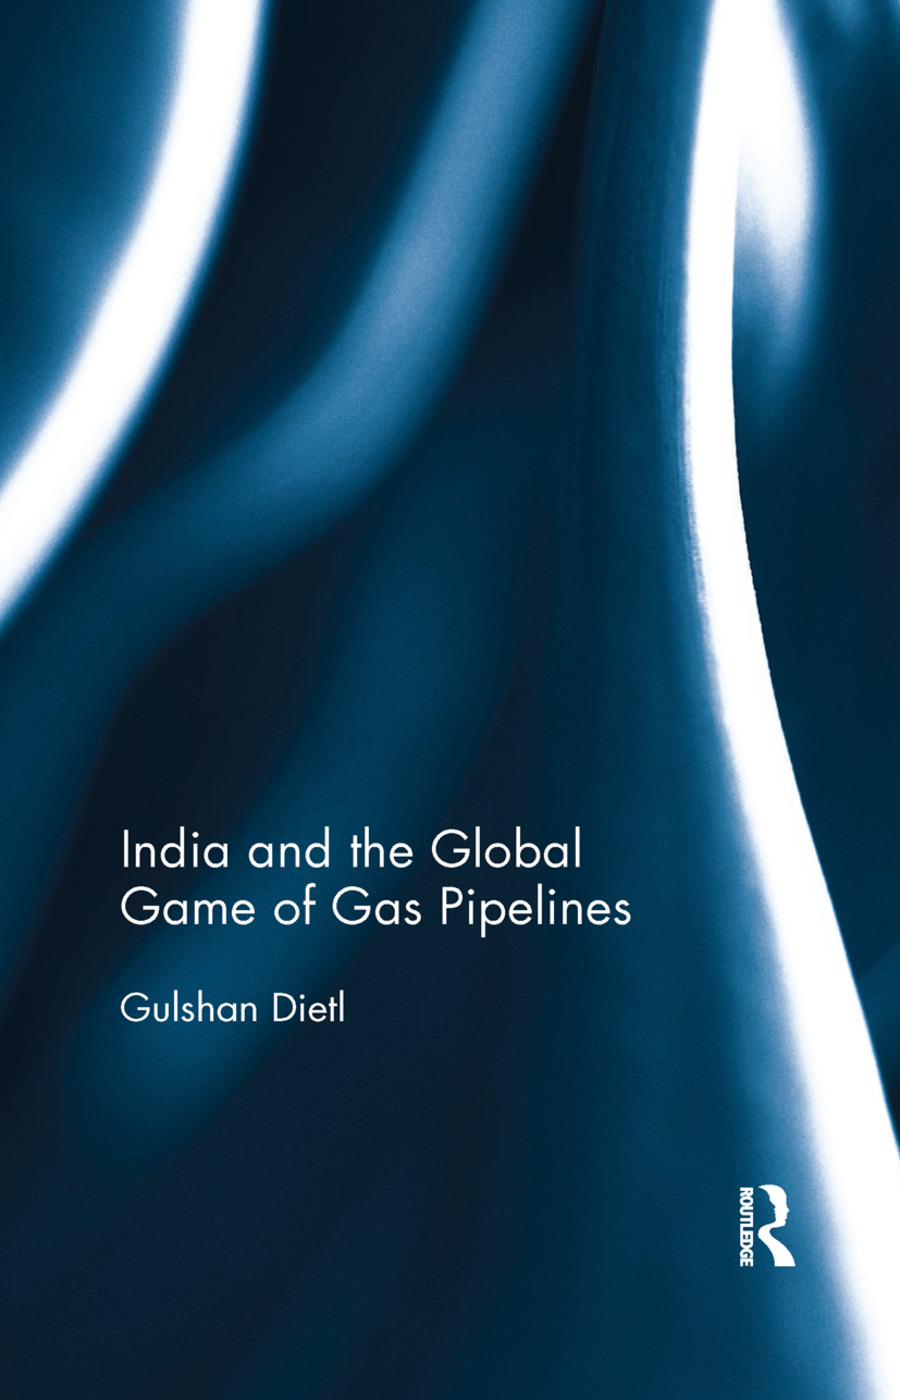 India and the Global Game of Gas Pipelines book cover